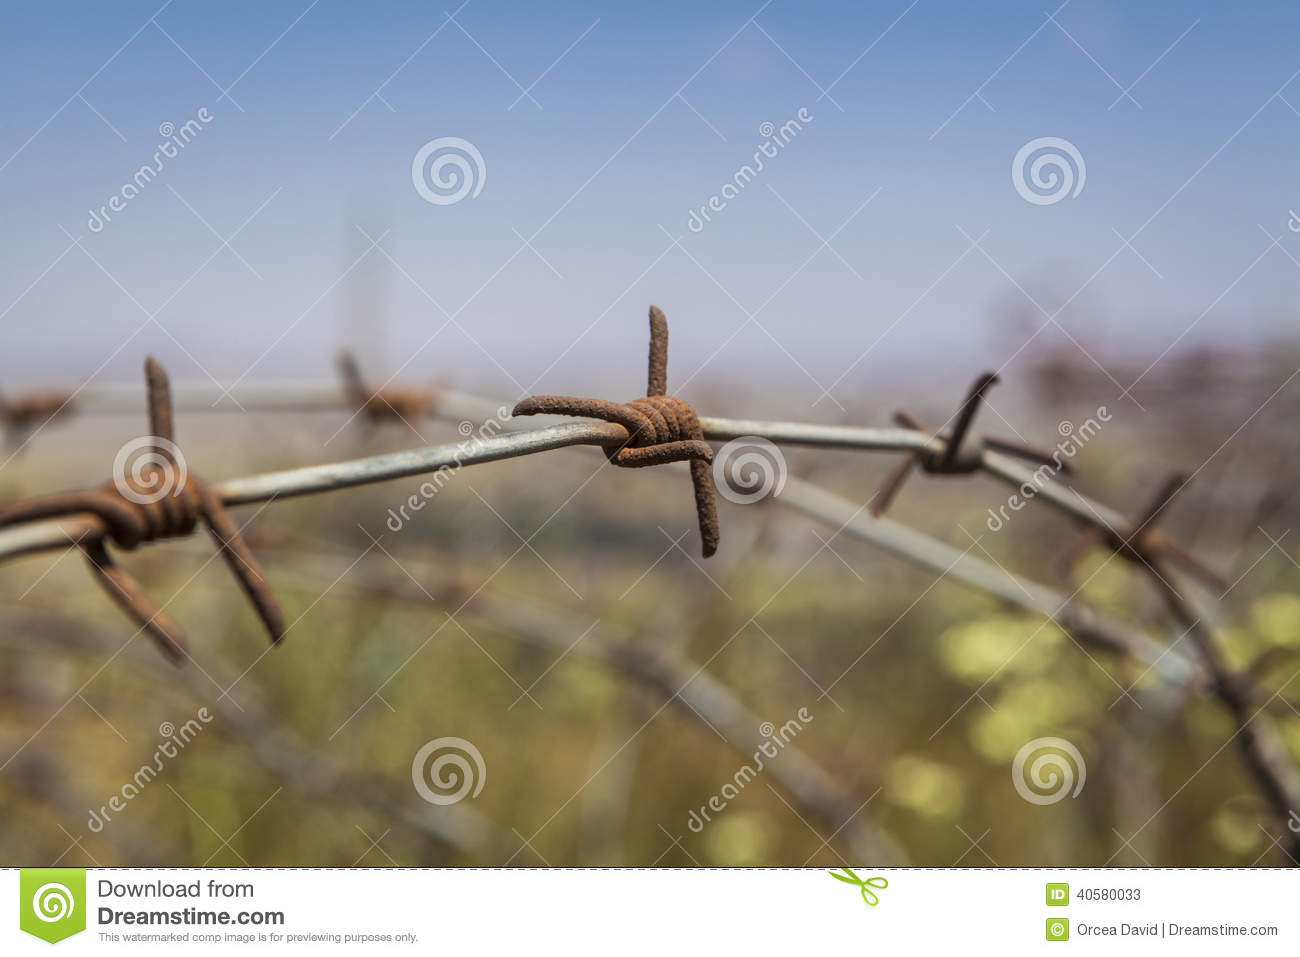 Old Barbed Wire Border Center Fast Charge Controller With Max712 8211 Max713 Stock Image Of Black Focus Closeup 40580033 Rh Dreamstime Com